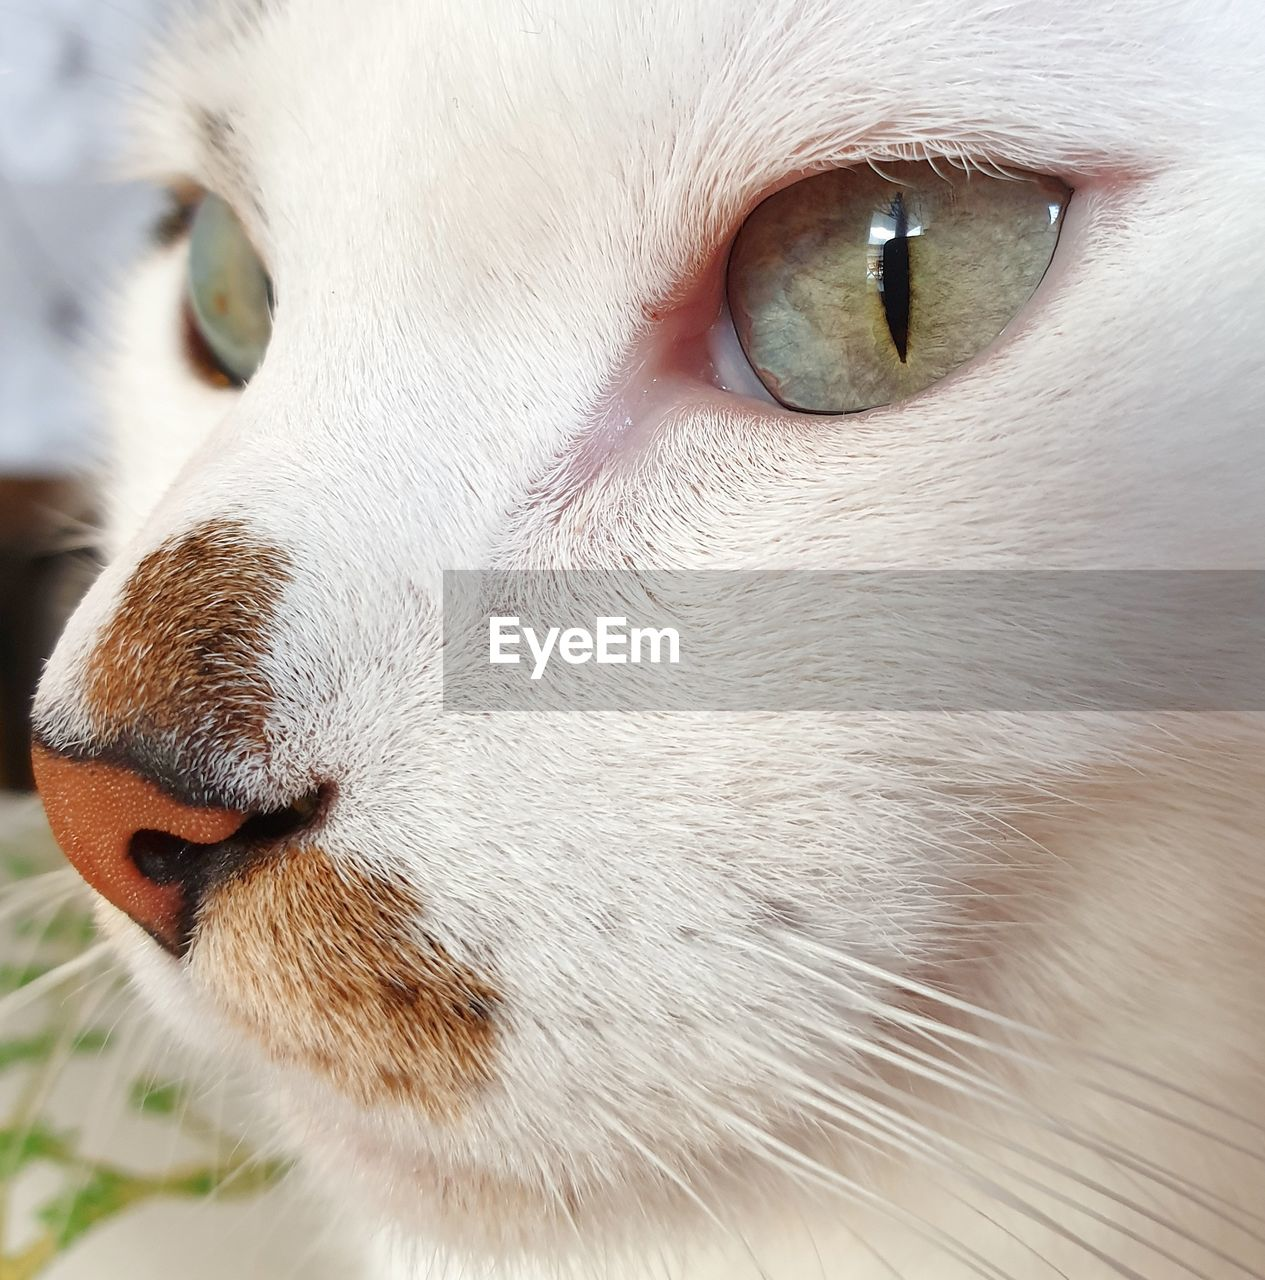 domestic, pets, domestic animals, animal, one animal, animal themes, mammal, feline, domestic cat, cat, close-up, vertebrate, animal body part, animal head, animal eye, whisker, eye, no people, looking, focus on foreground, animal nose, snout, animal mouth